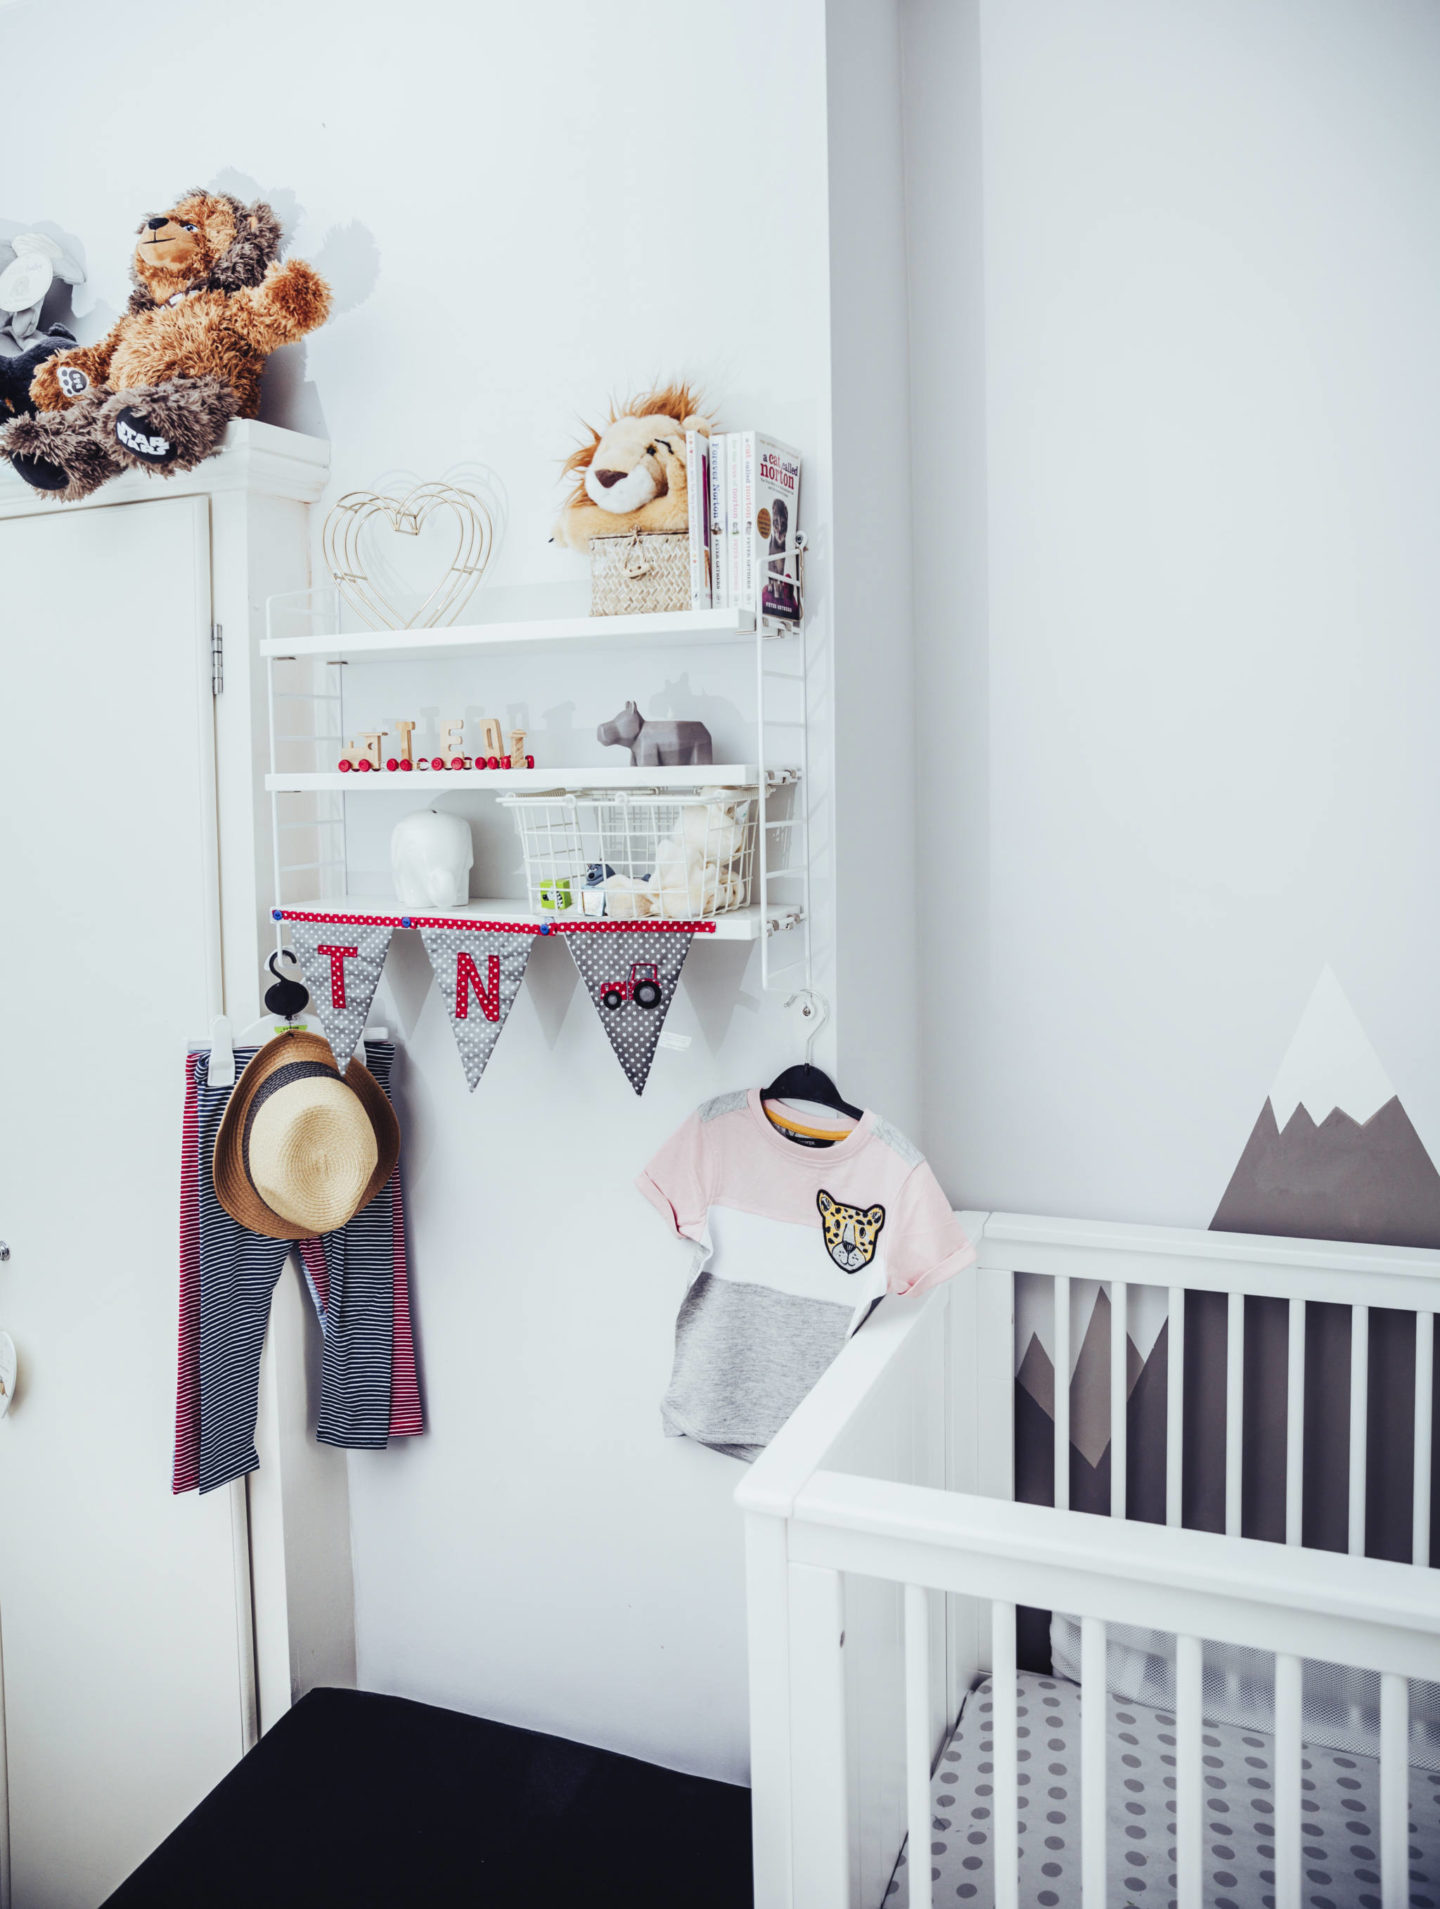 shelves in a child's room